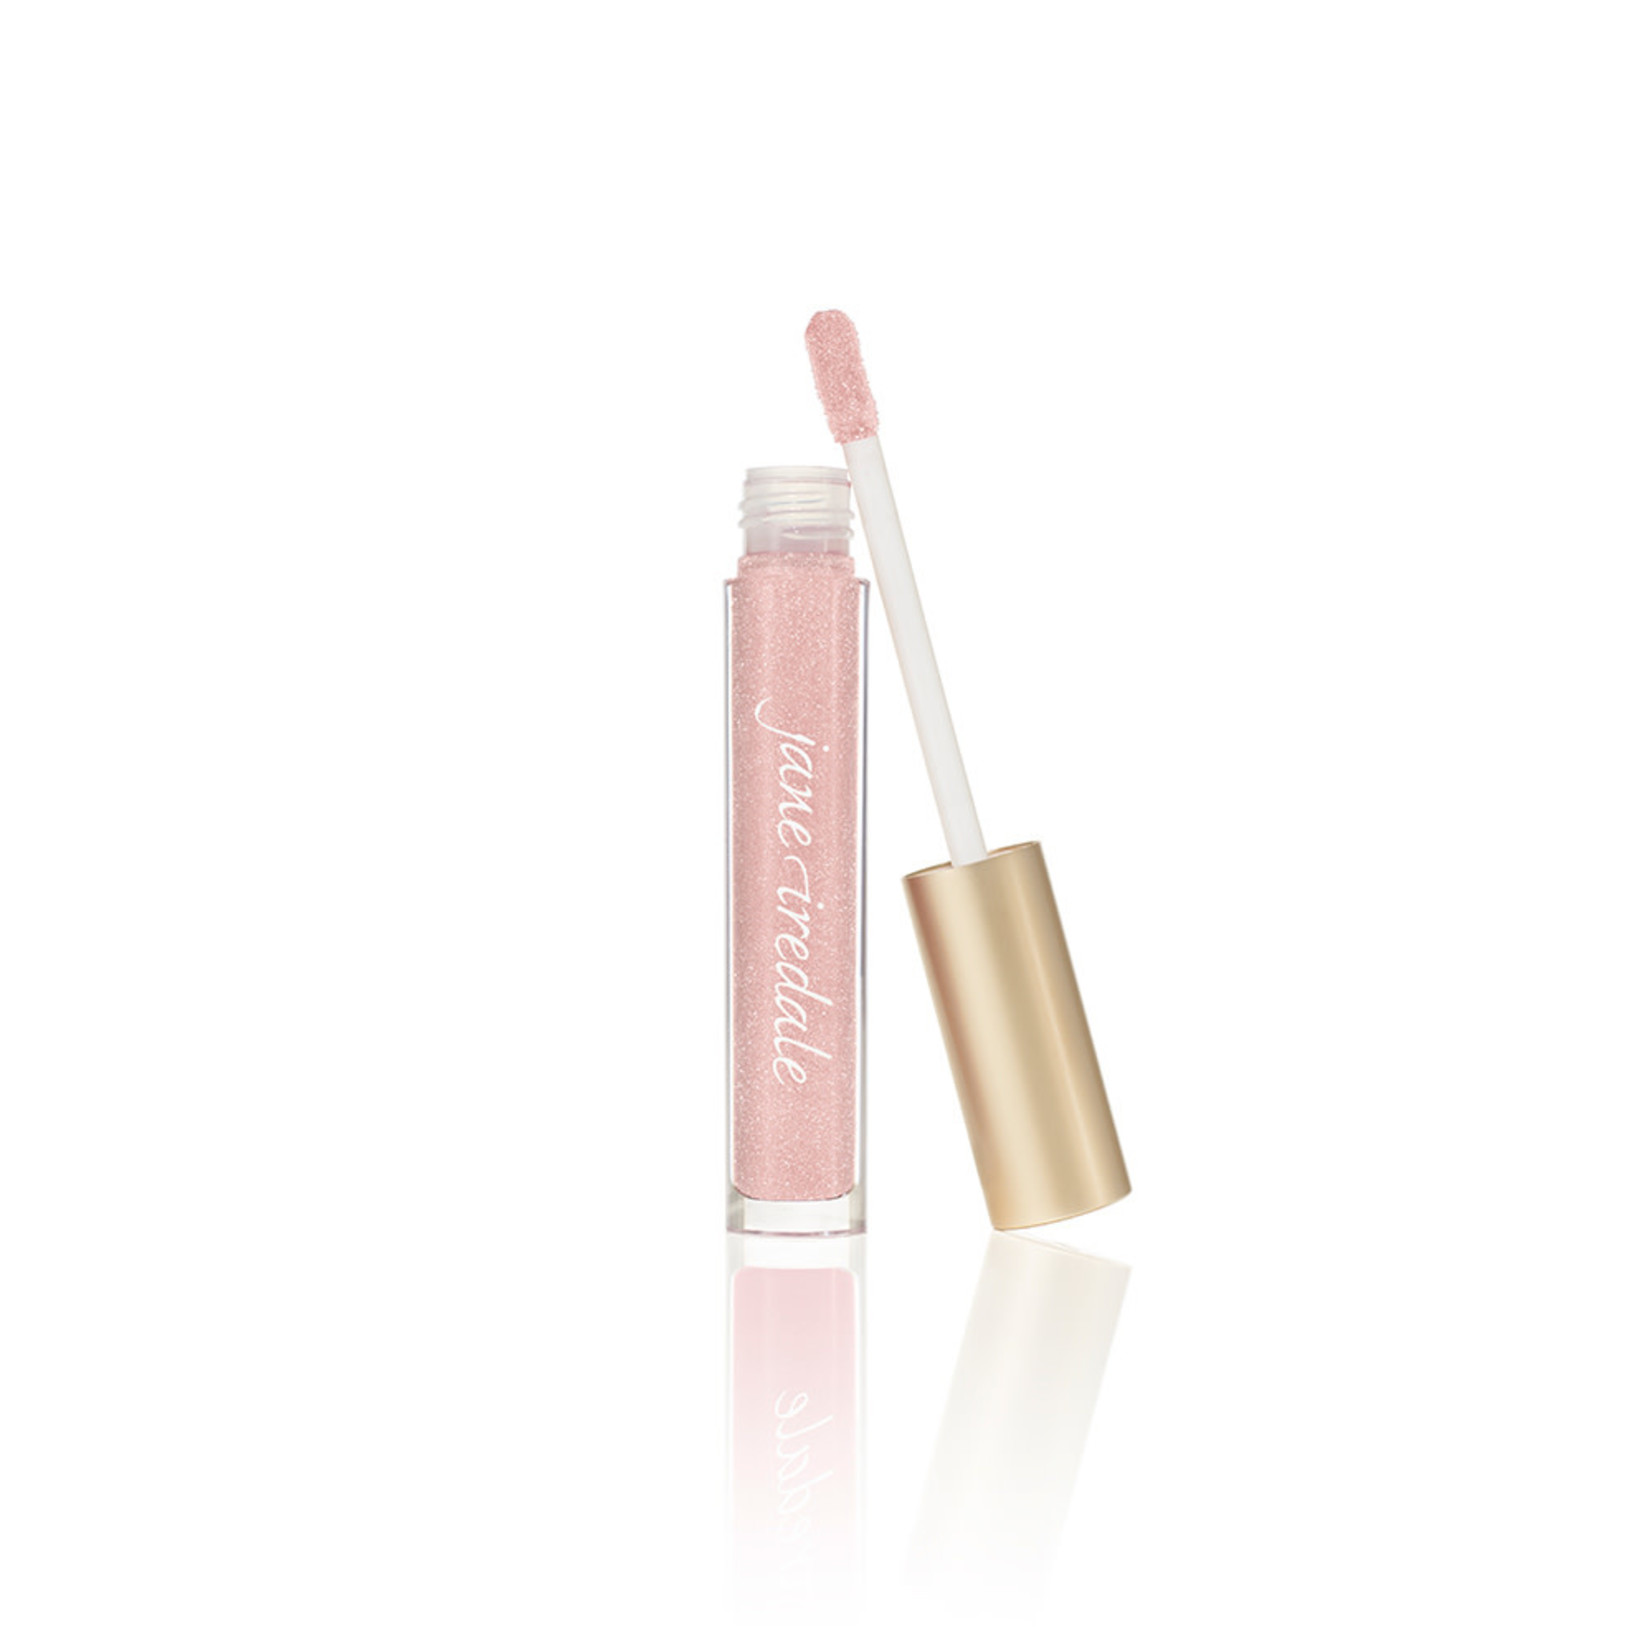 jane iredale Hyaluronic lip gloss - snow berry